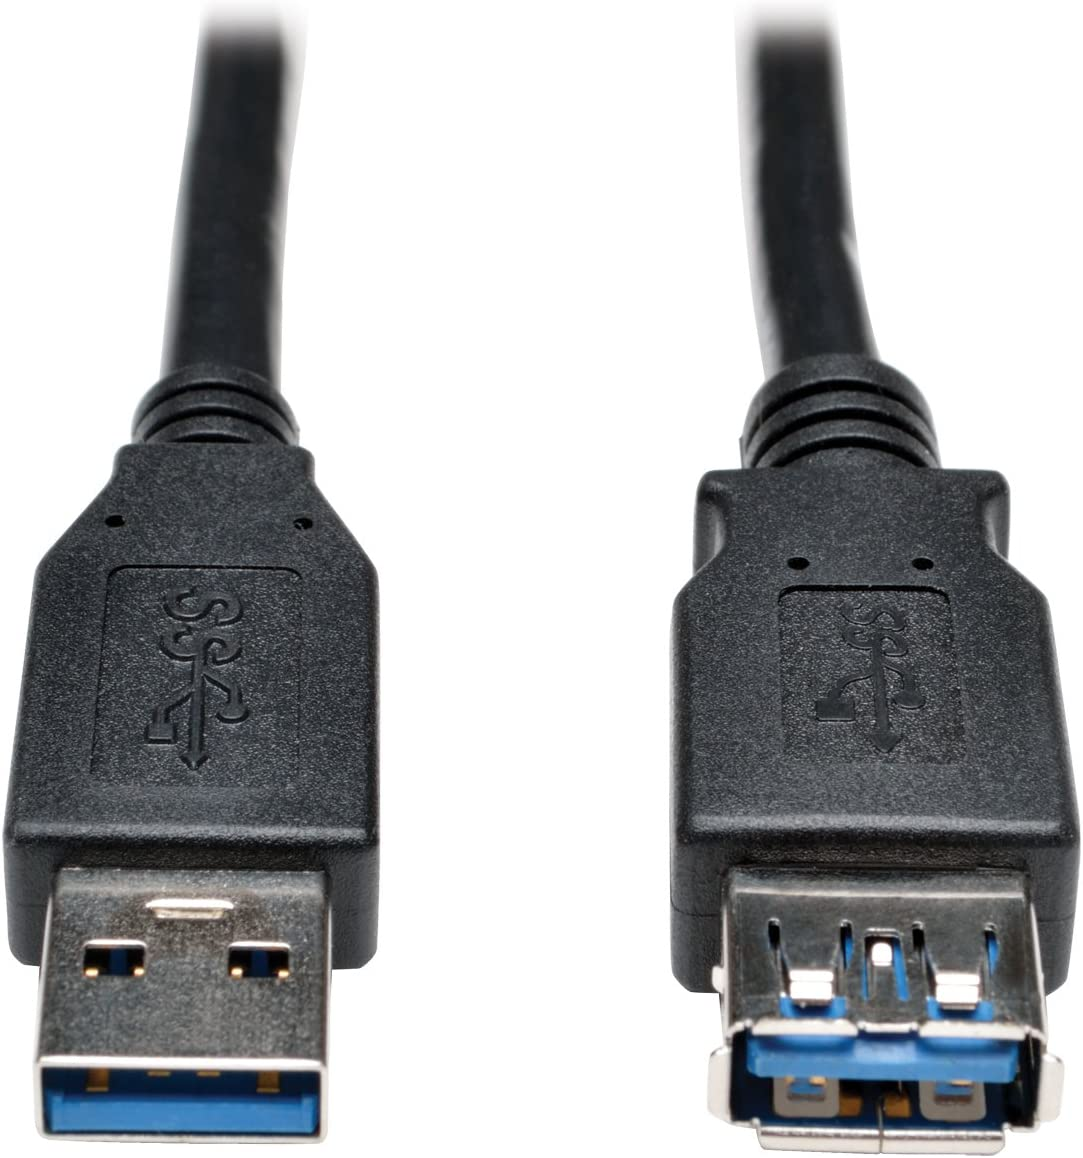 6 U324-006-BK A Male to A Female 6-ft Black Tripp Lite 6-Feet USB 3.0 Super Speed 5Gbps Extension Cable